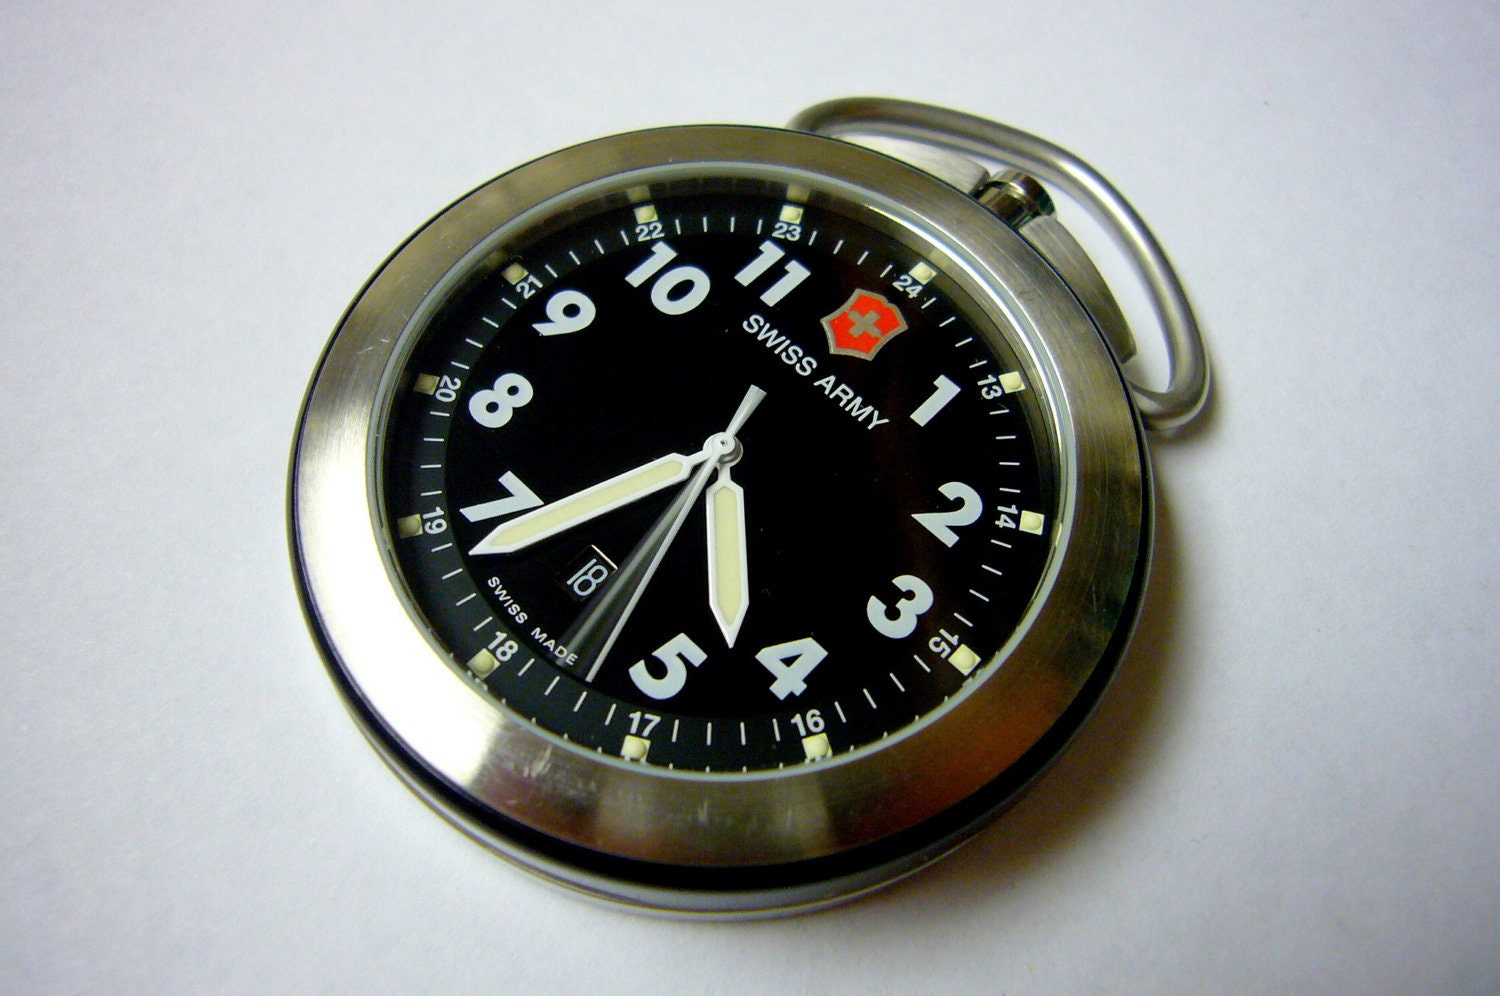 Swiss Army Pocket Watch